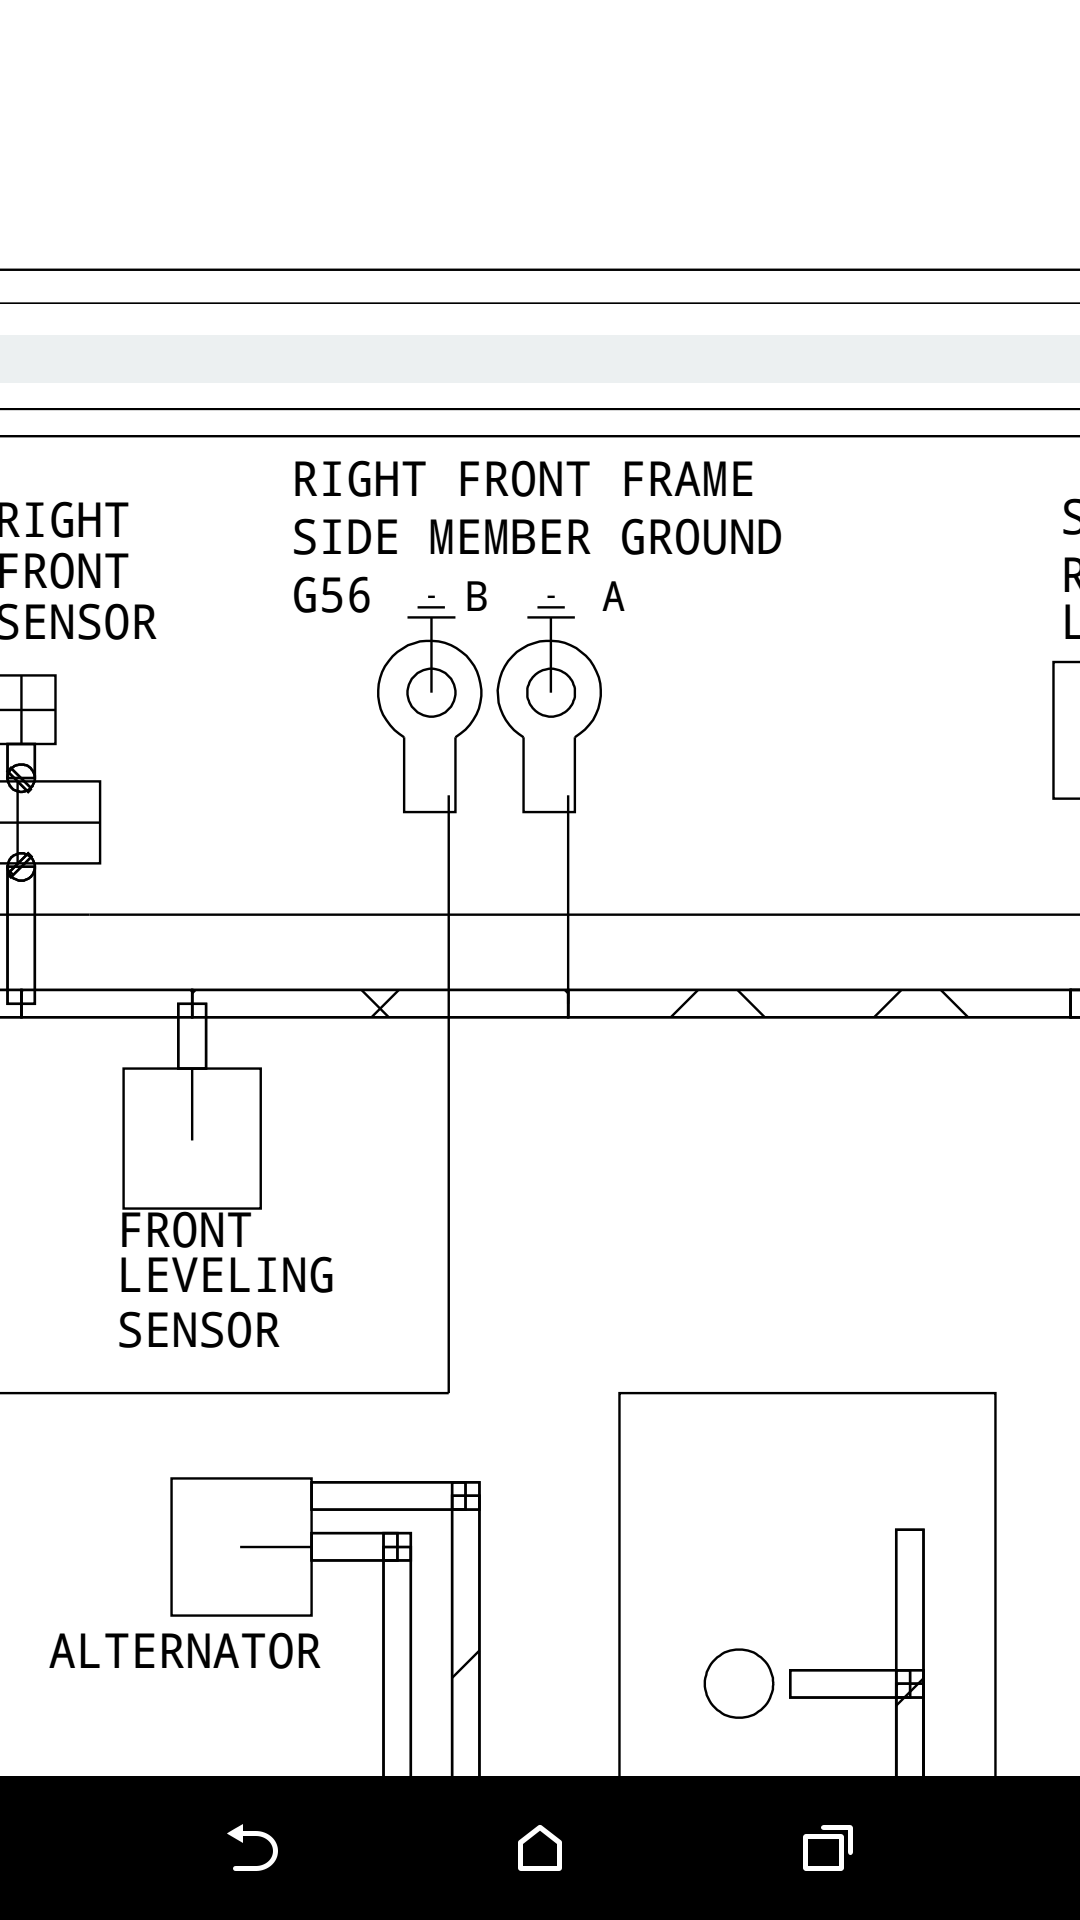 Ford Focus Full Wiring Schematics Mk2  2 5 And Mk3 - Page 3 - Ford Focus Club